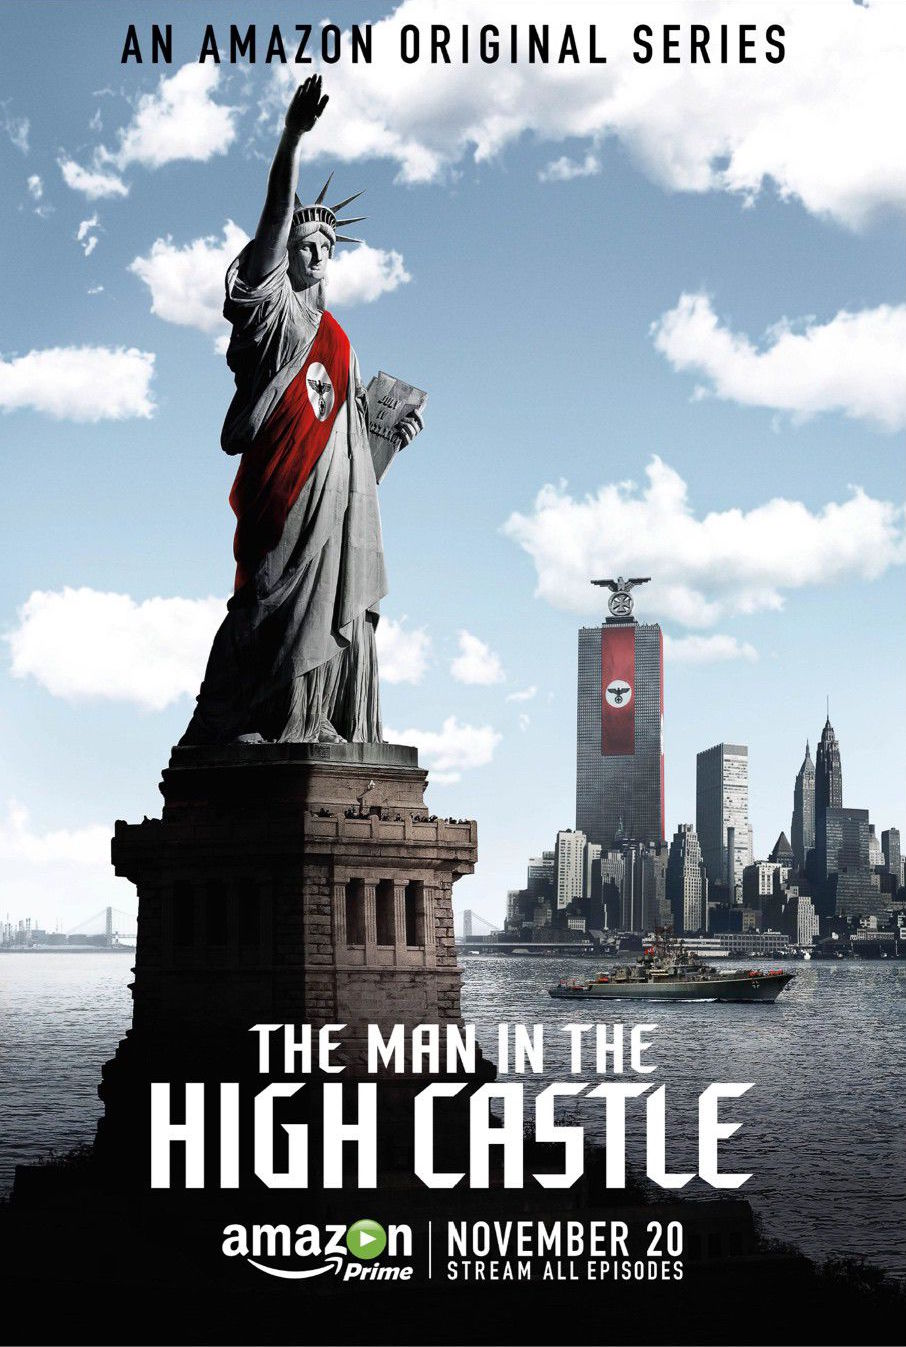 the-man-in-the-high-castle-amazon